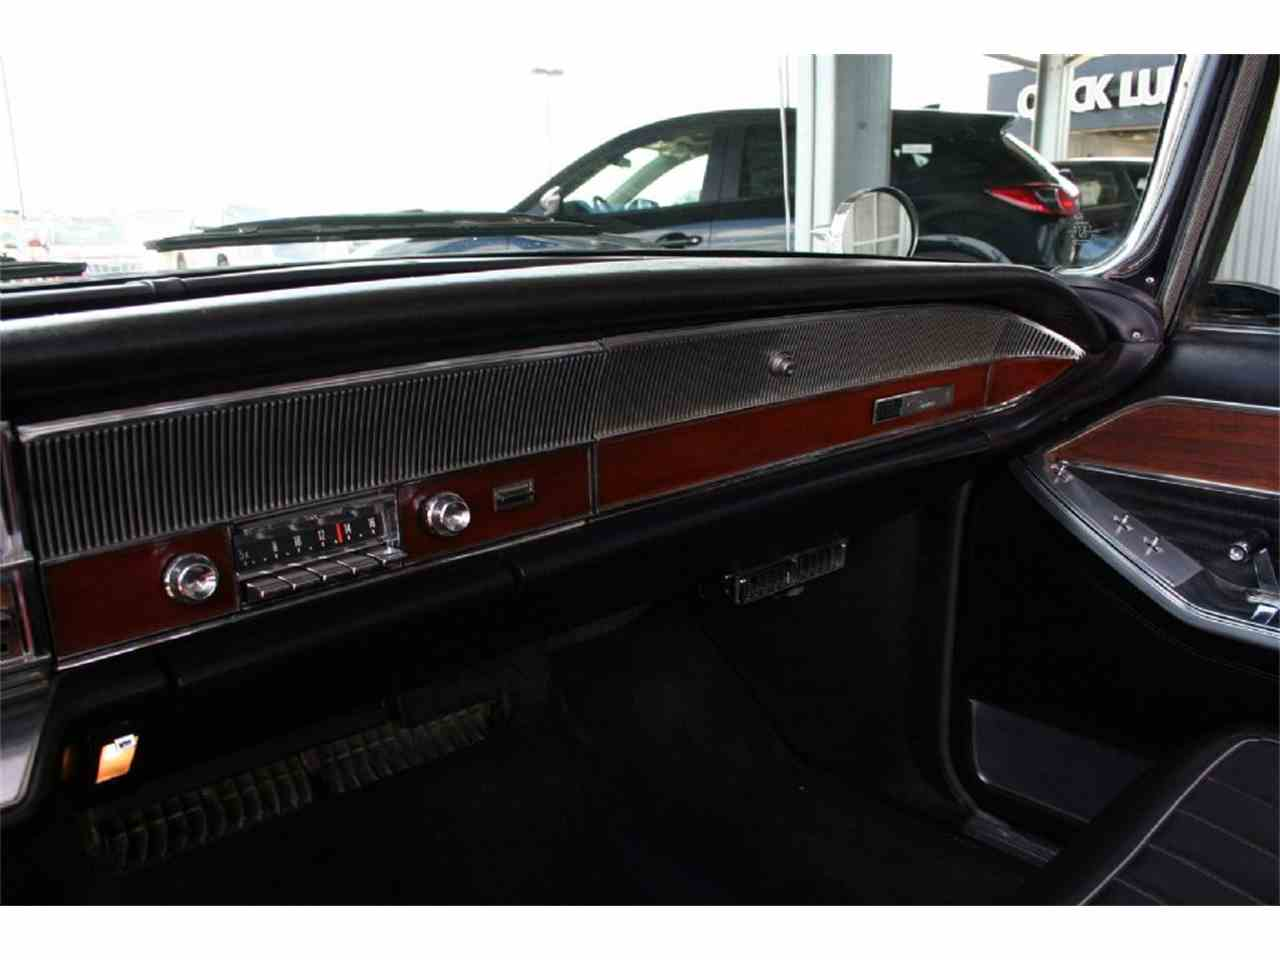 Large Picture of Classic '65 Chrysler Imperial located in Iowa - $54,300.00 - JEGD